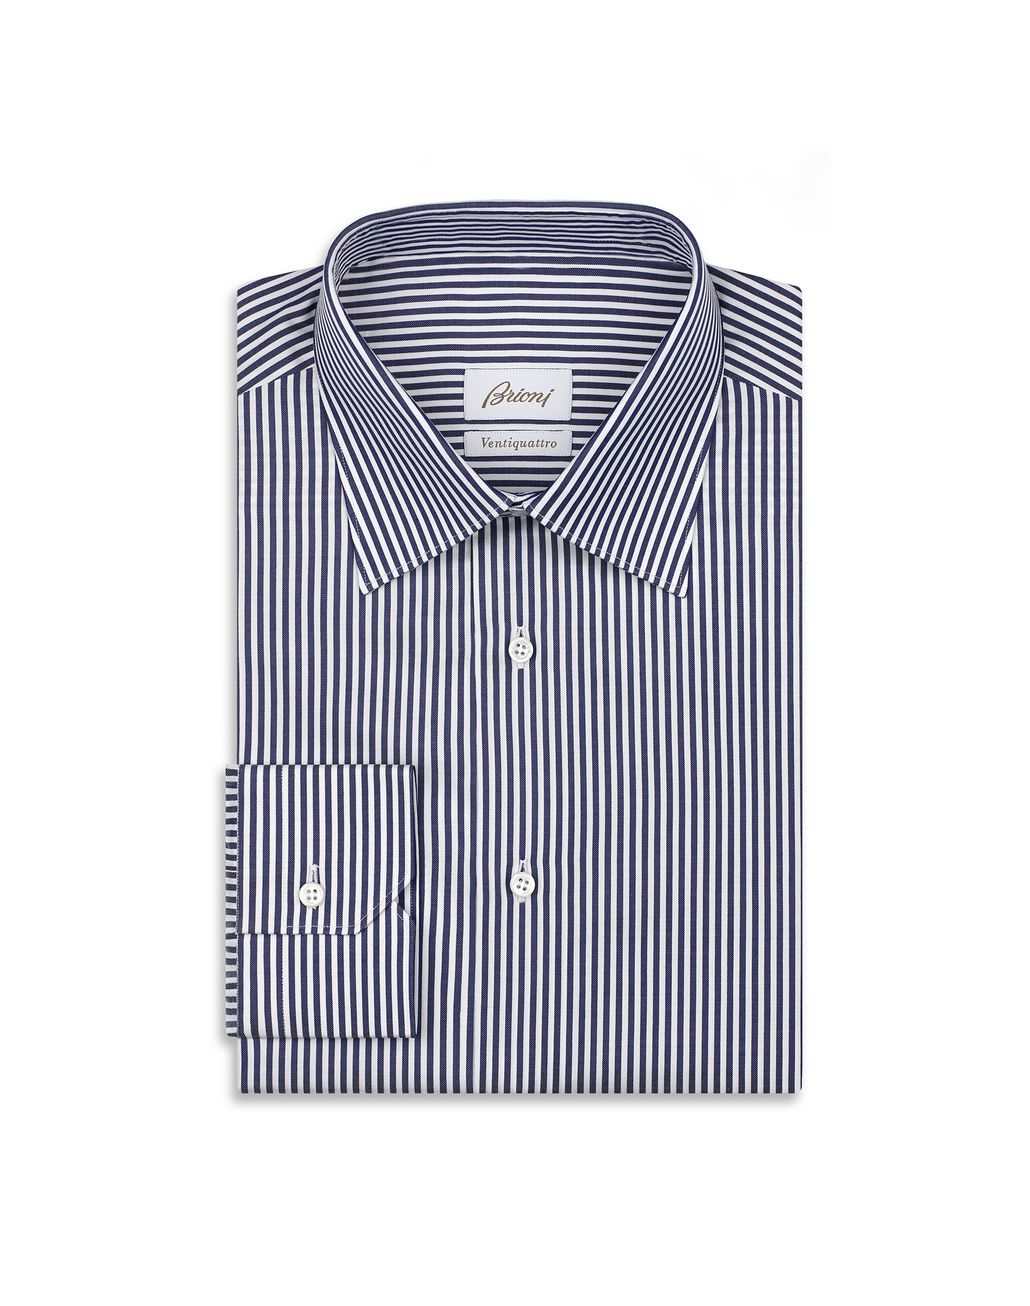 BRIONI Navy Blue and White Striped Formal Shirt Formal shirt Man f